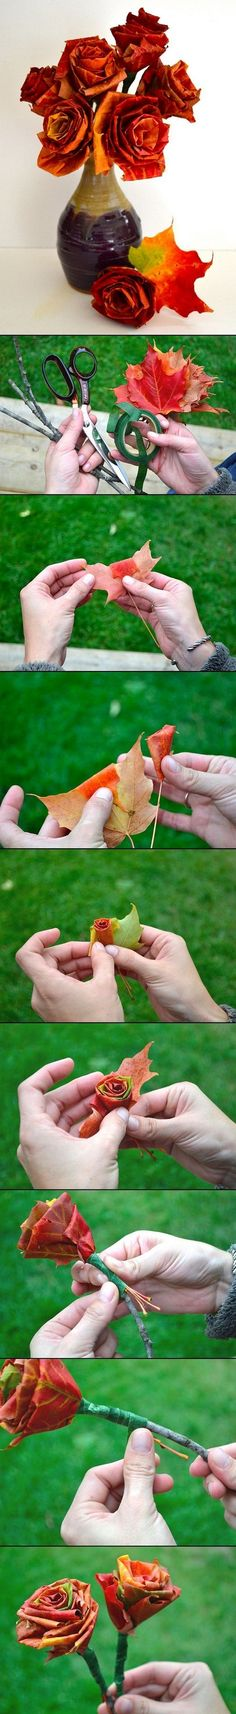 Diy Autumn Leaf Bouquet This Looks Like An Awesome Idea For A Fall Wedding Cute Crafts, Crafts For Kids, Arts And Crafts, Diy Crafts, Autumn Crafts, Nature Crafts, Flower Crafts, Diy Flowers, Leaf Flowers